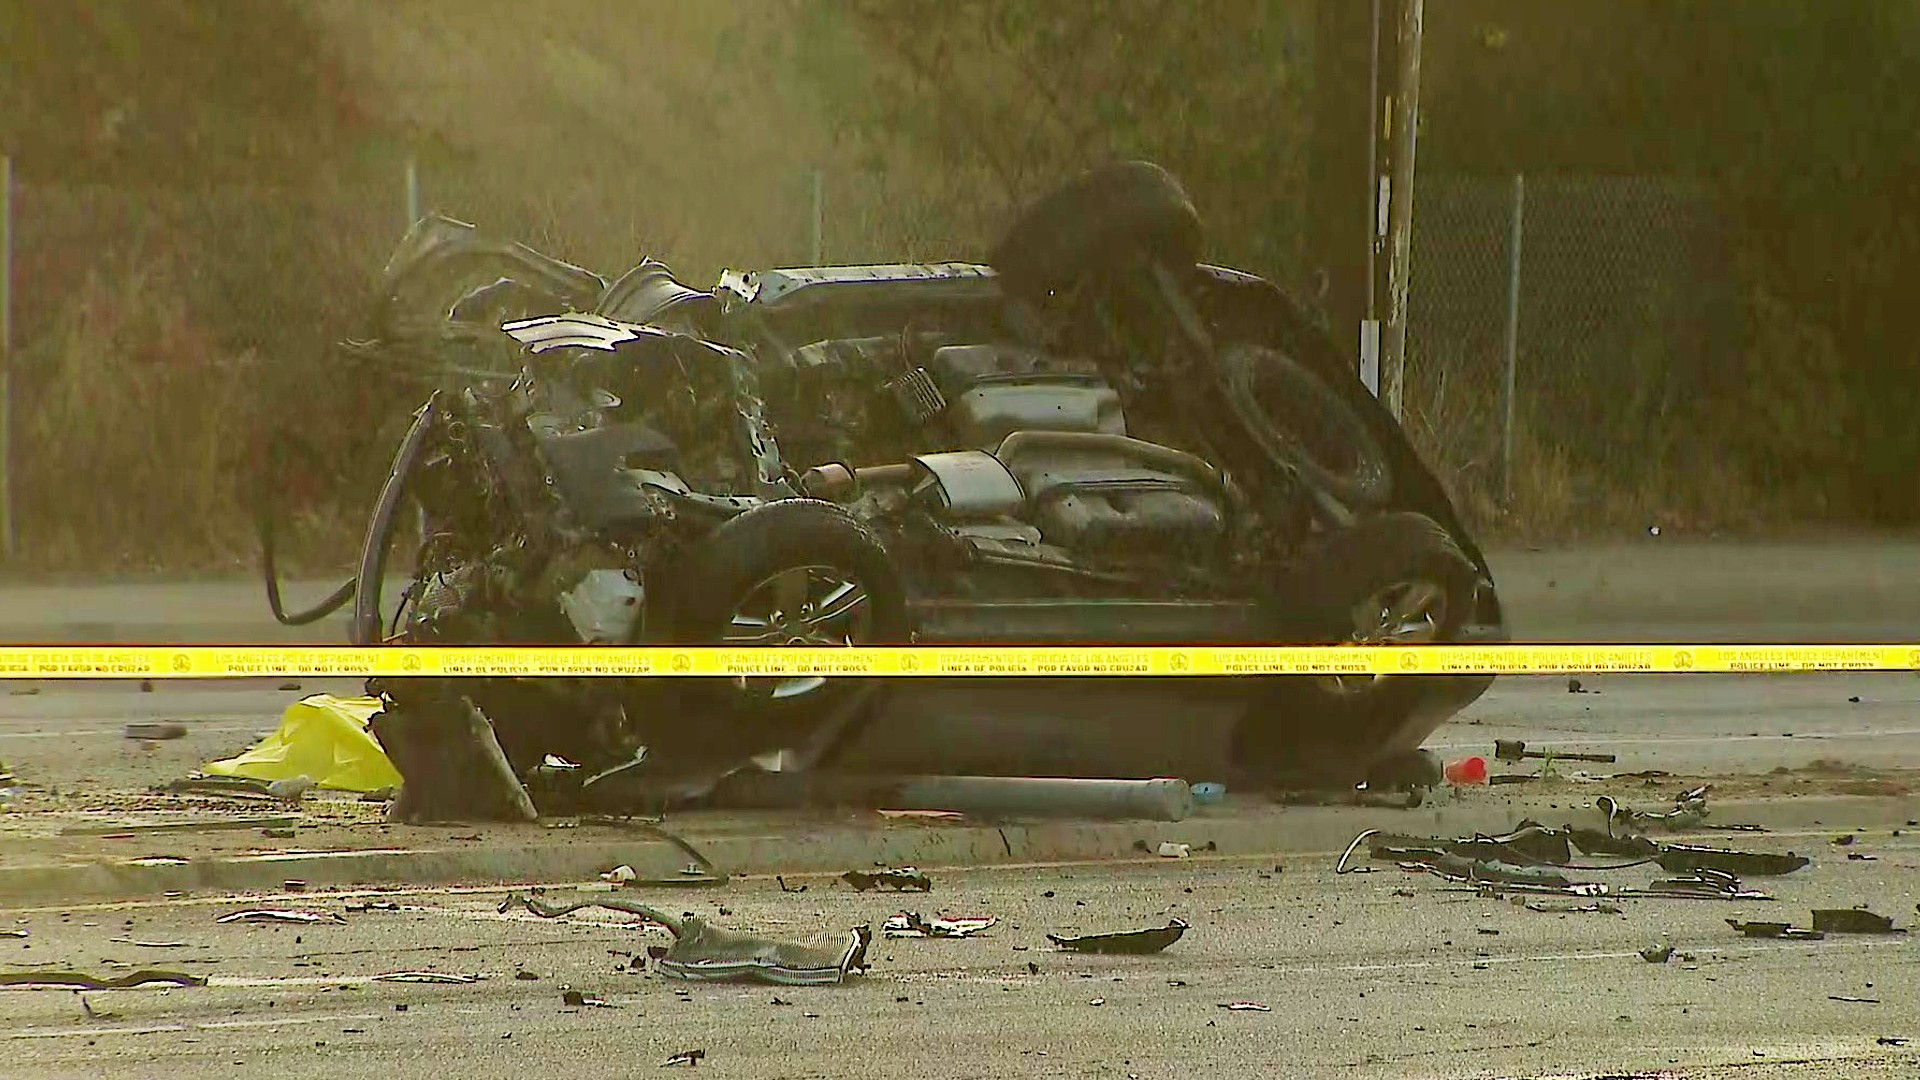 A vehicle involved in a deadly car crash in Culver City is seen on July 7, 2020. (KTLA)